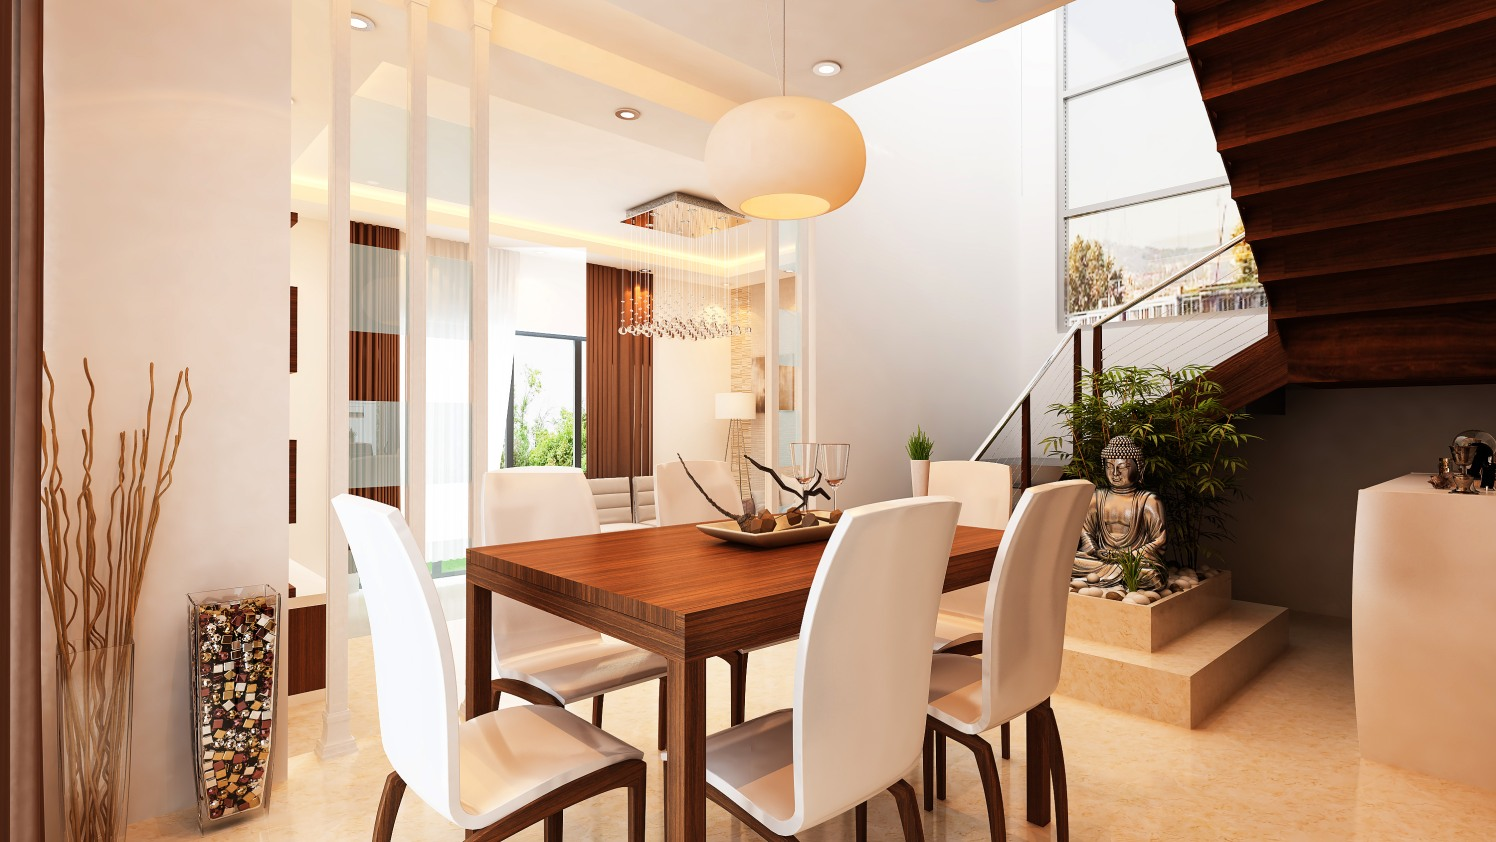 Dining Hall with wooden table and white chairs by Ram PJ Dining-room Contemporary | Interior Design Photos & Ideas